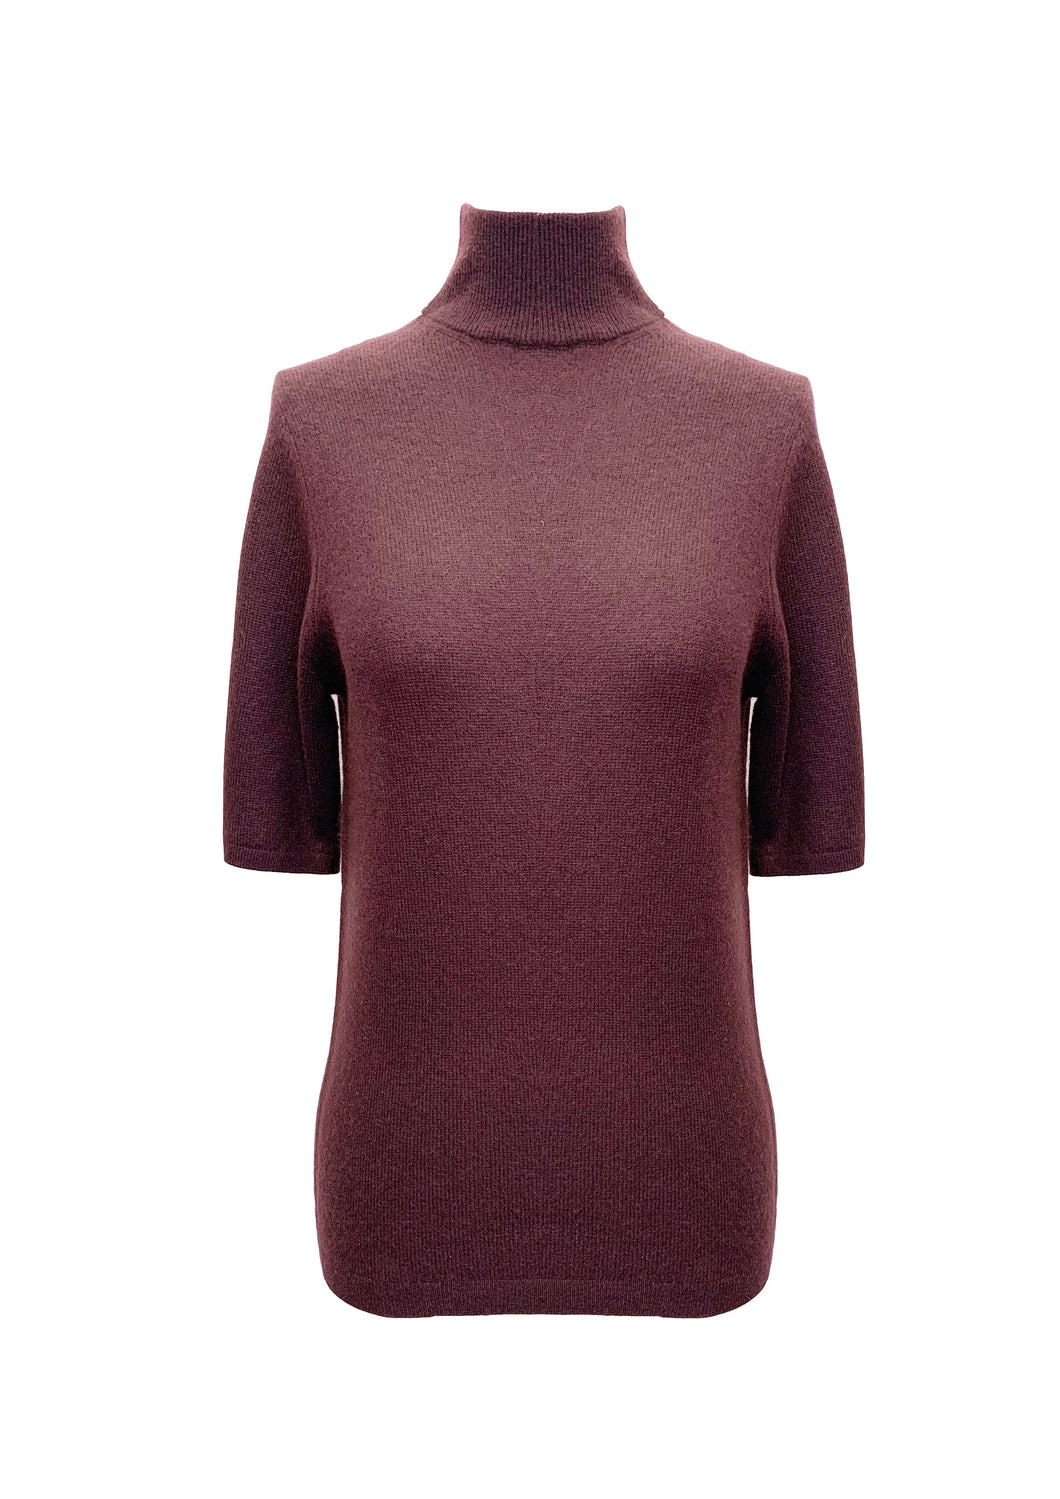 ROLL NECK CASHMERE KNITWEAR